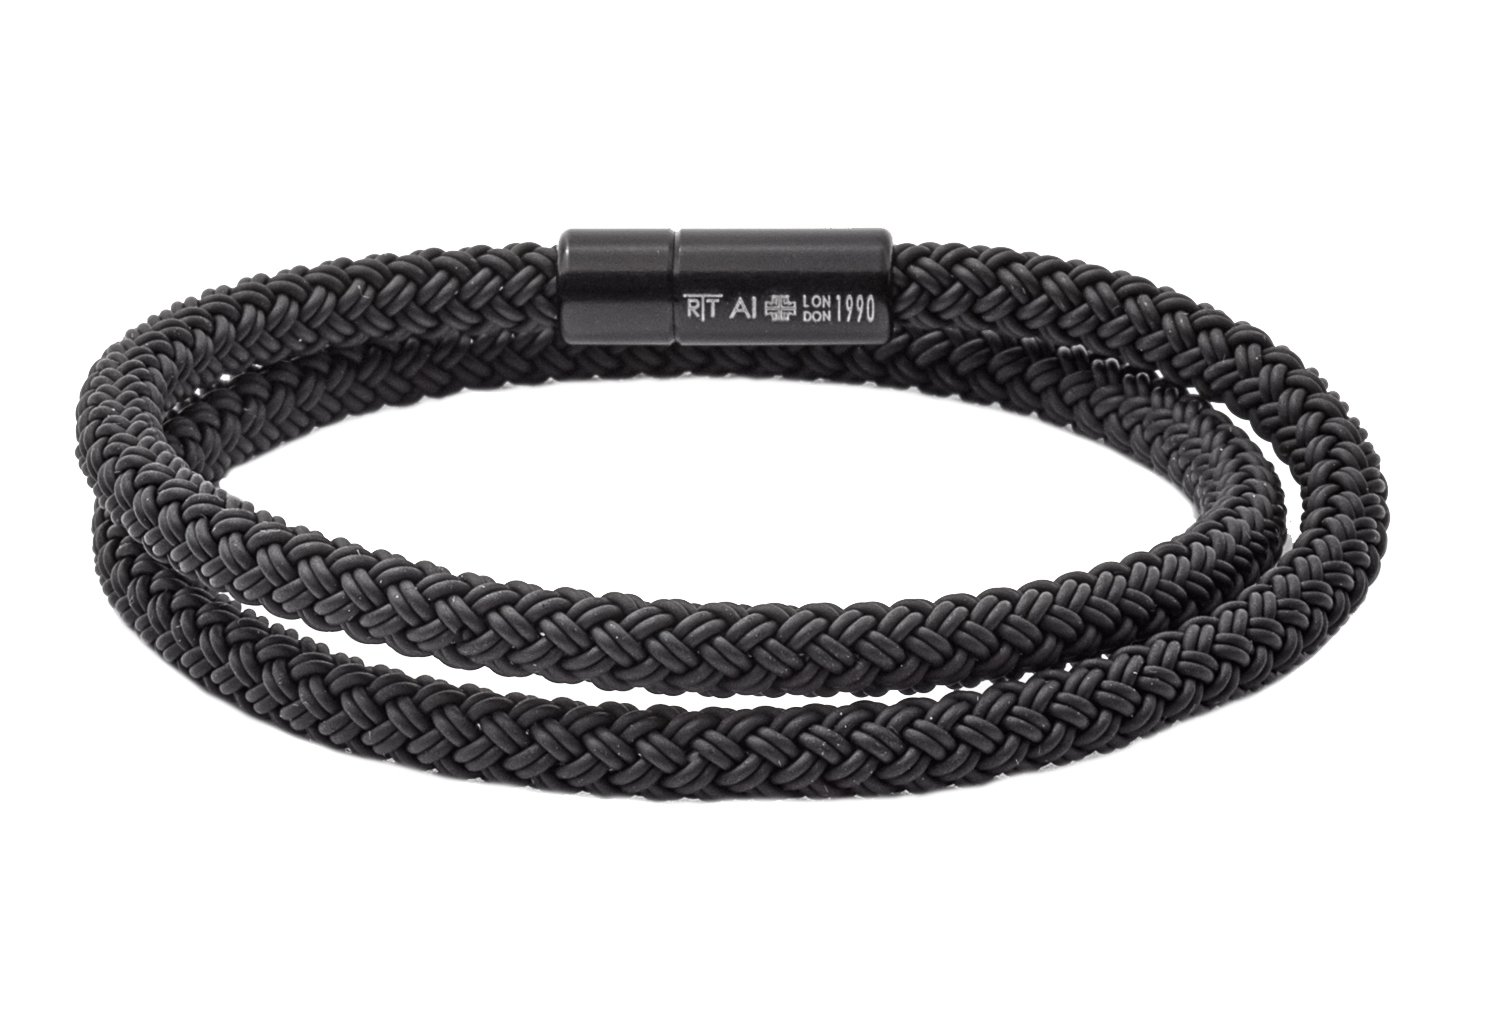 Tateossian RT Rubber, Double Wrap Braided Cable Bracelet with Anodised Aluminum Clasp - Black, Large 41cm